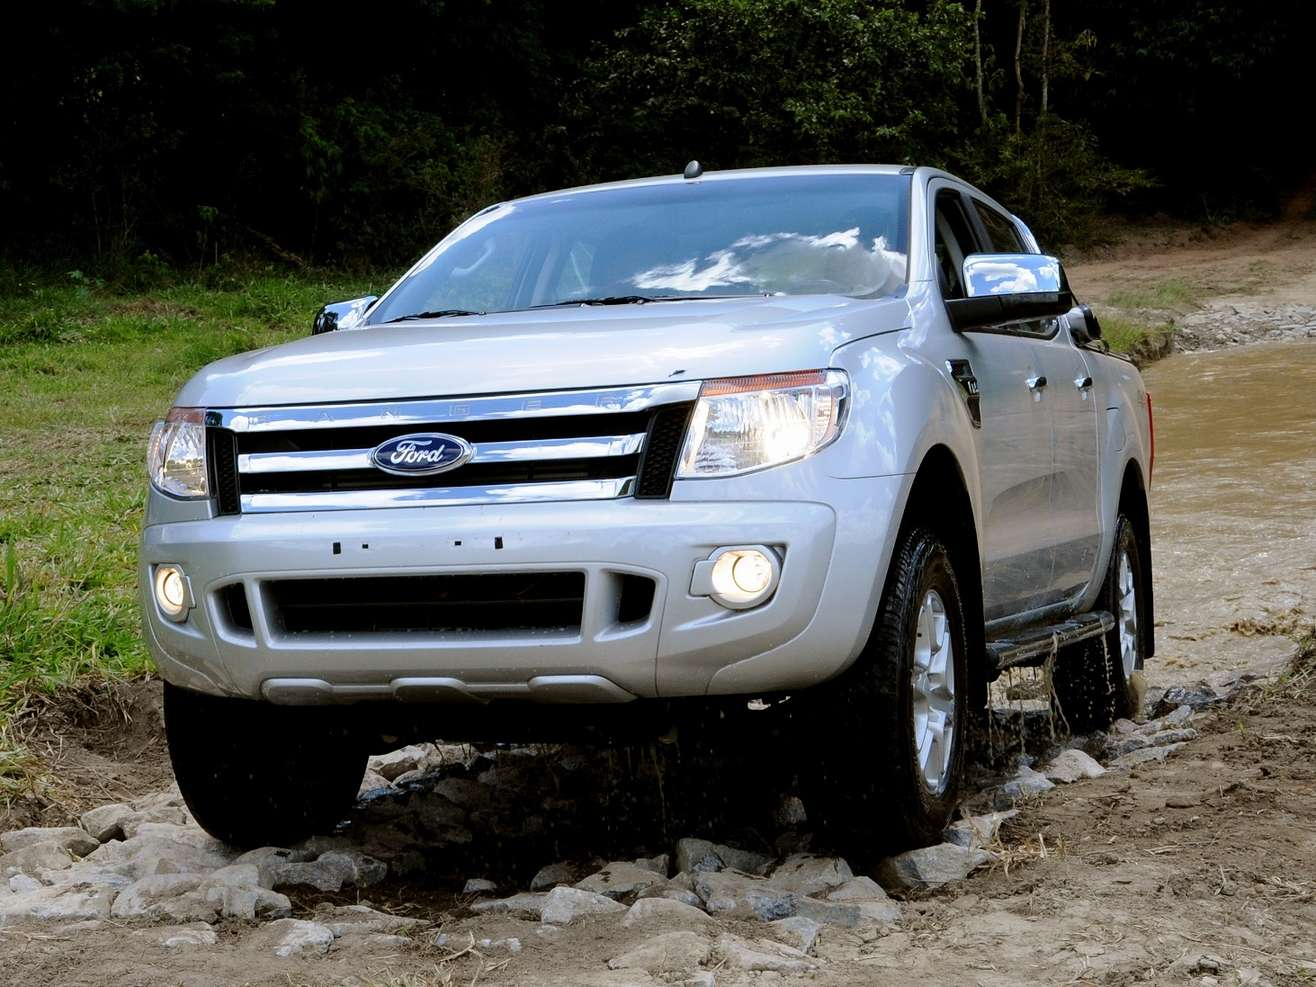 Ford Ranger Limited #8950028